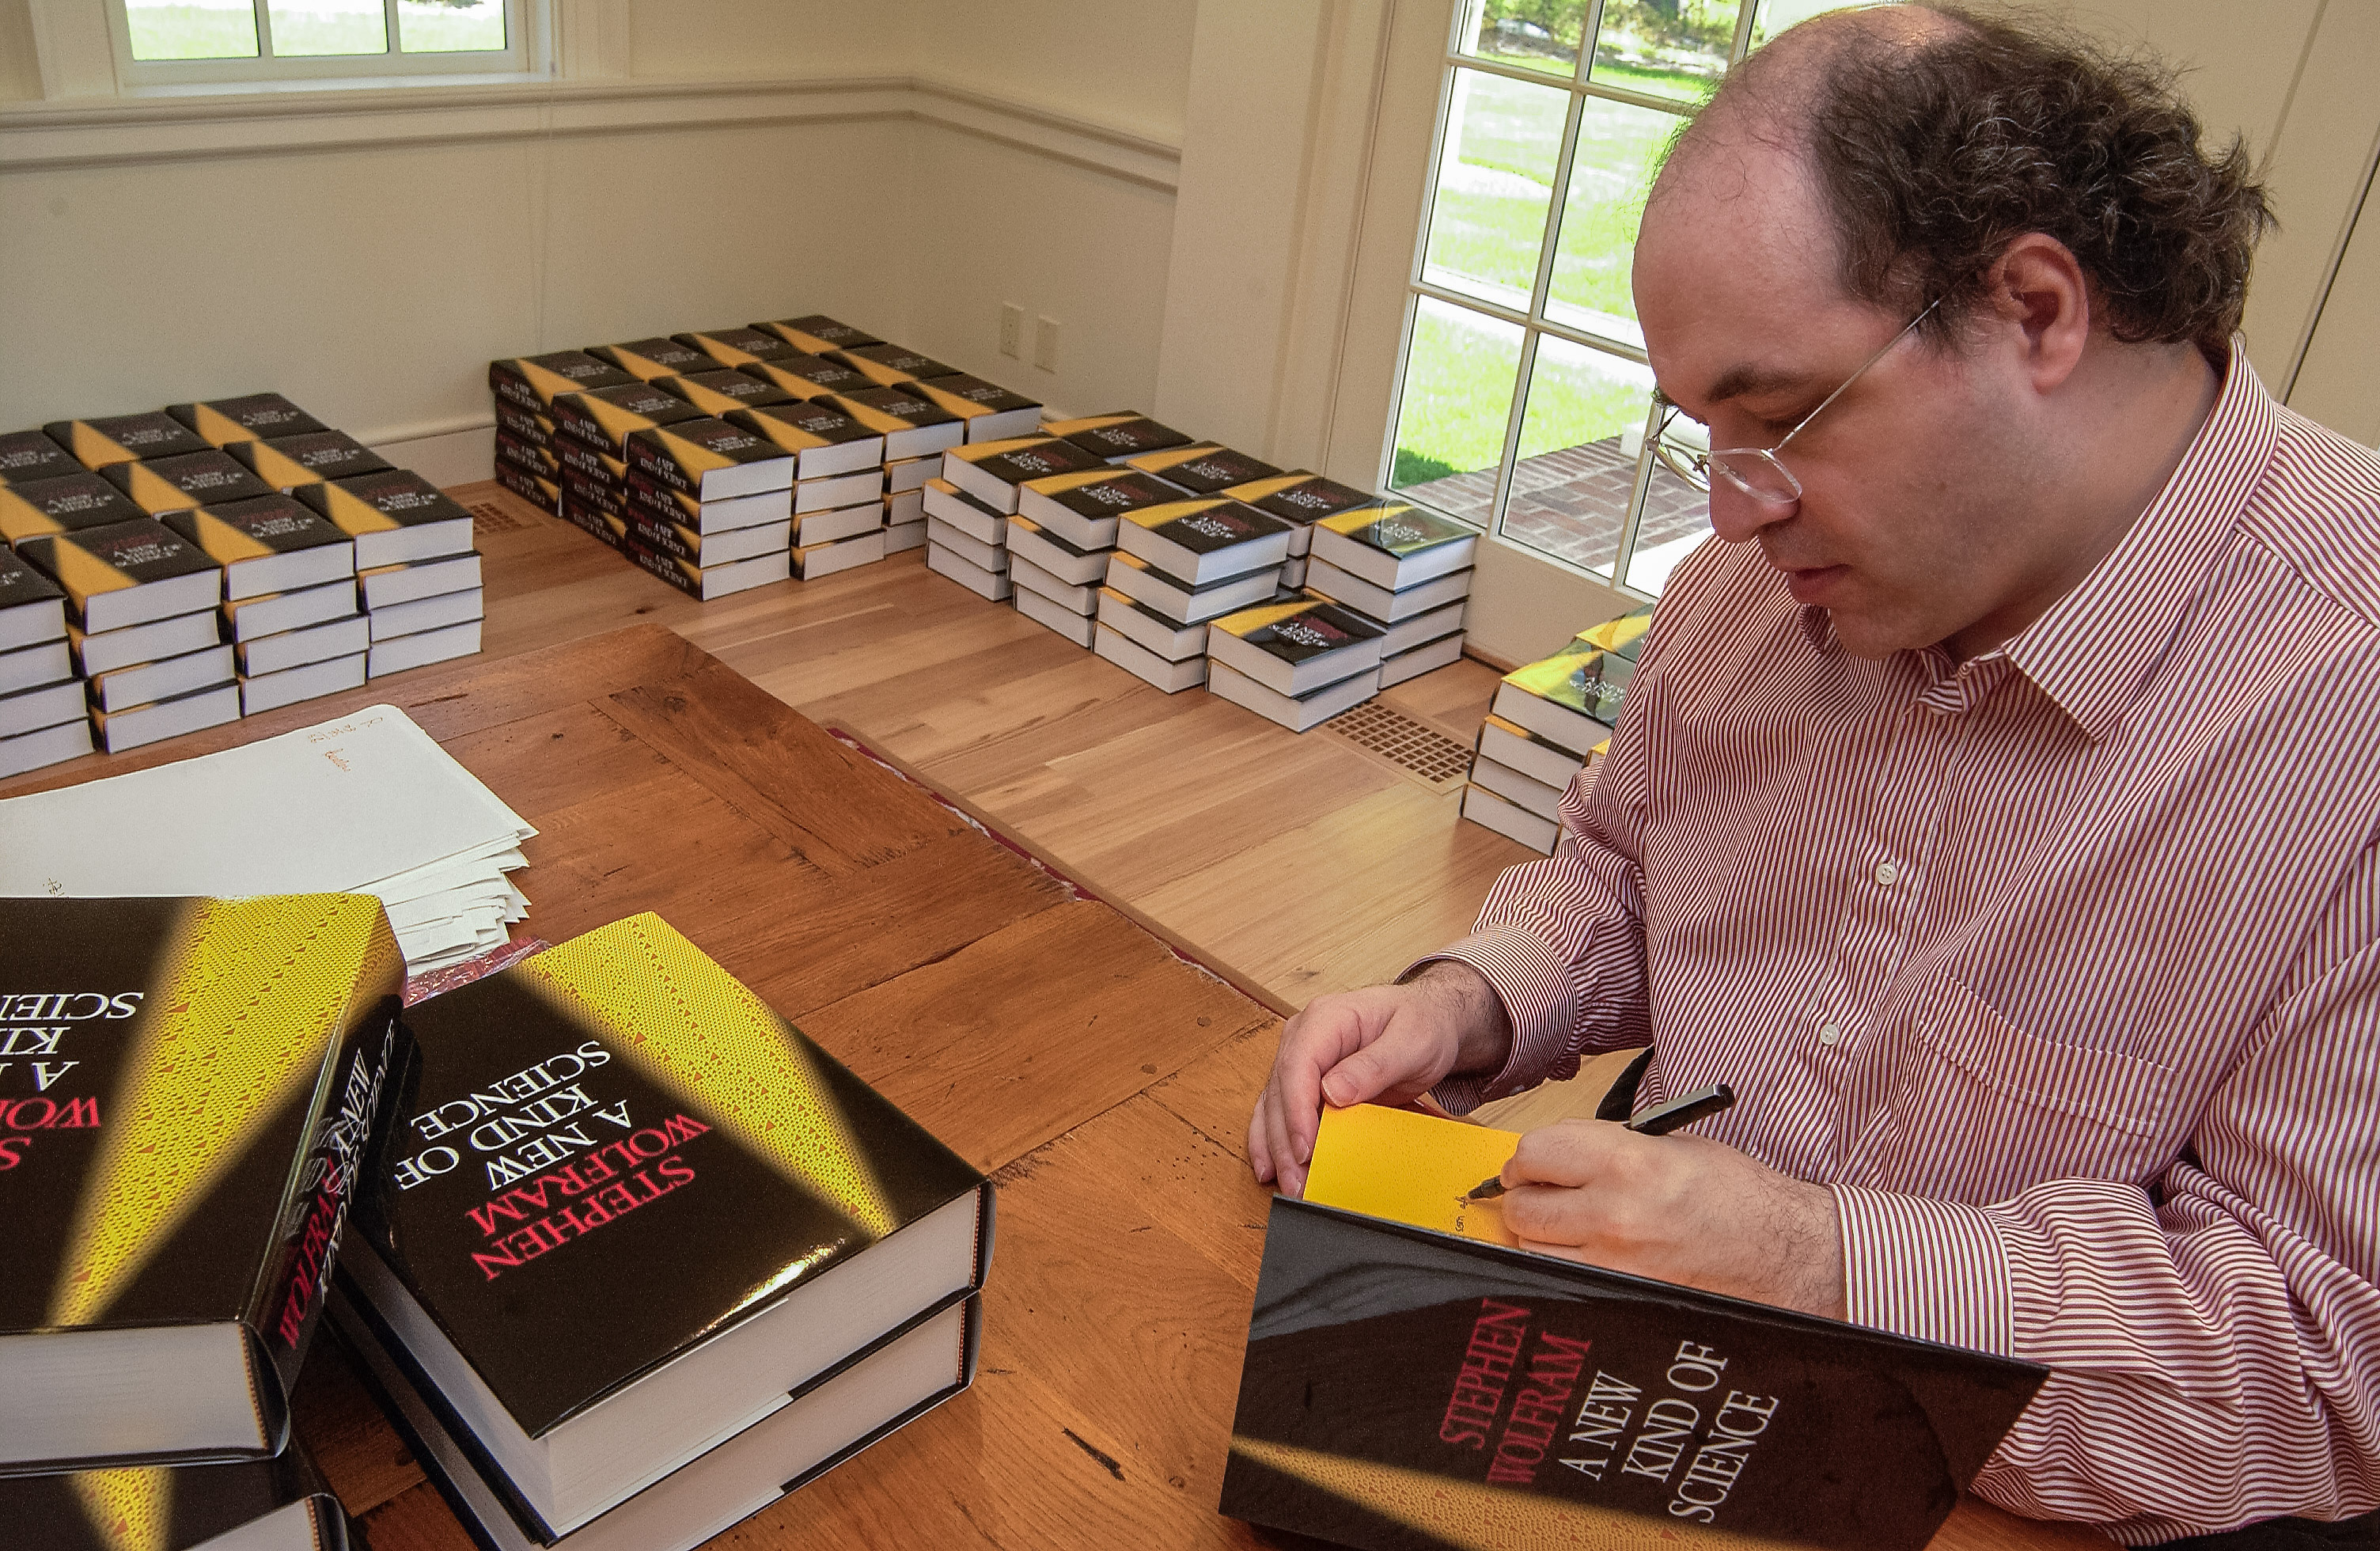 The life and times of Stephen Wolfram. 2002: Signing NKSes for friends and employees...